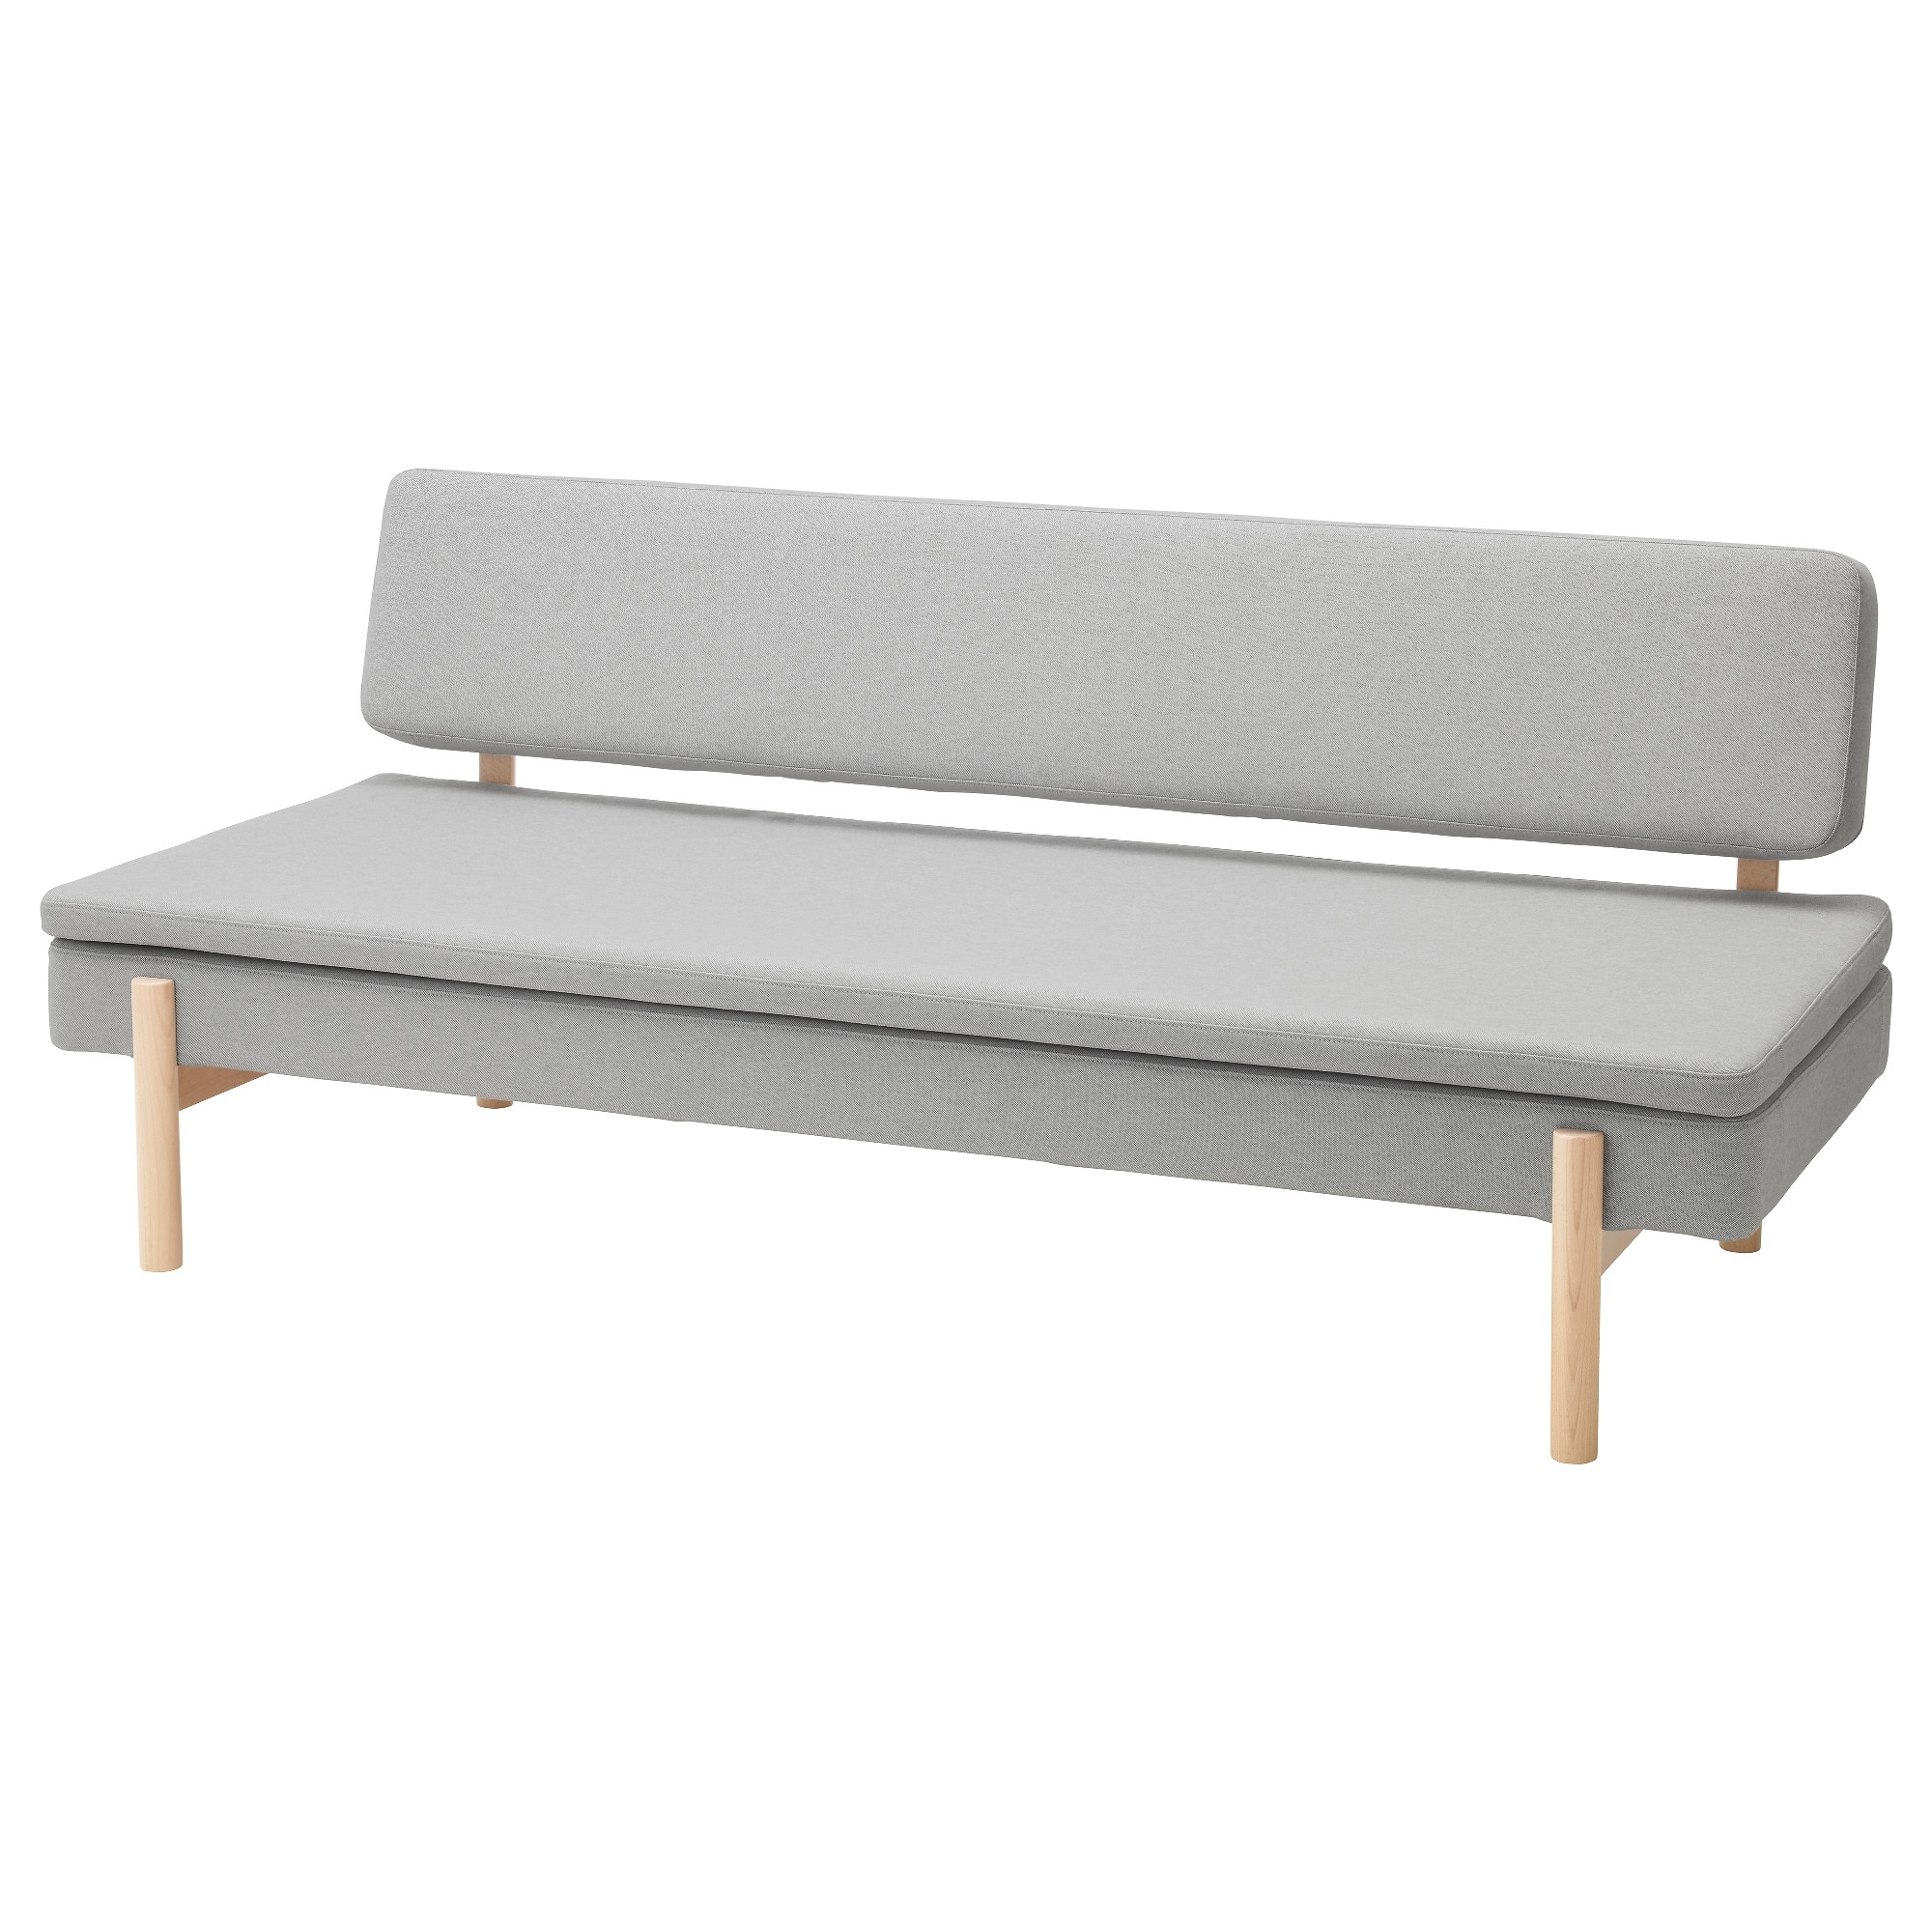 Ypperlig 3-Seat Sofa Bed Ramna Light Grey - Ikea within Ikea Small Sofas (Image 10 of 10)